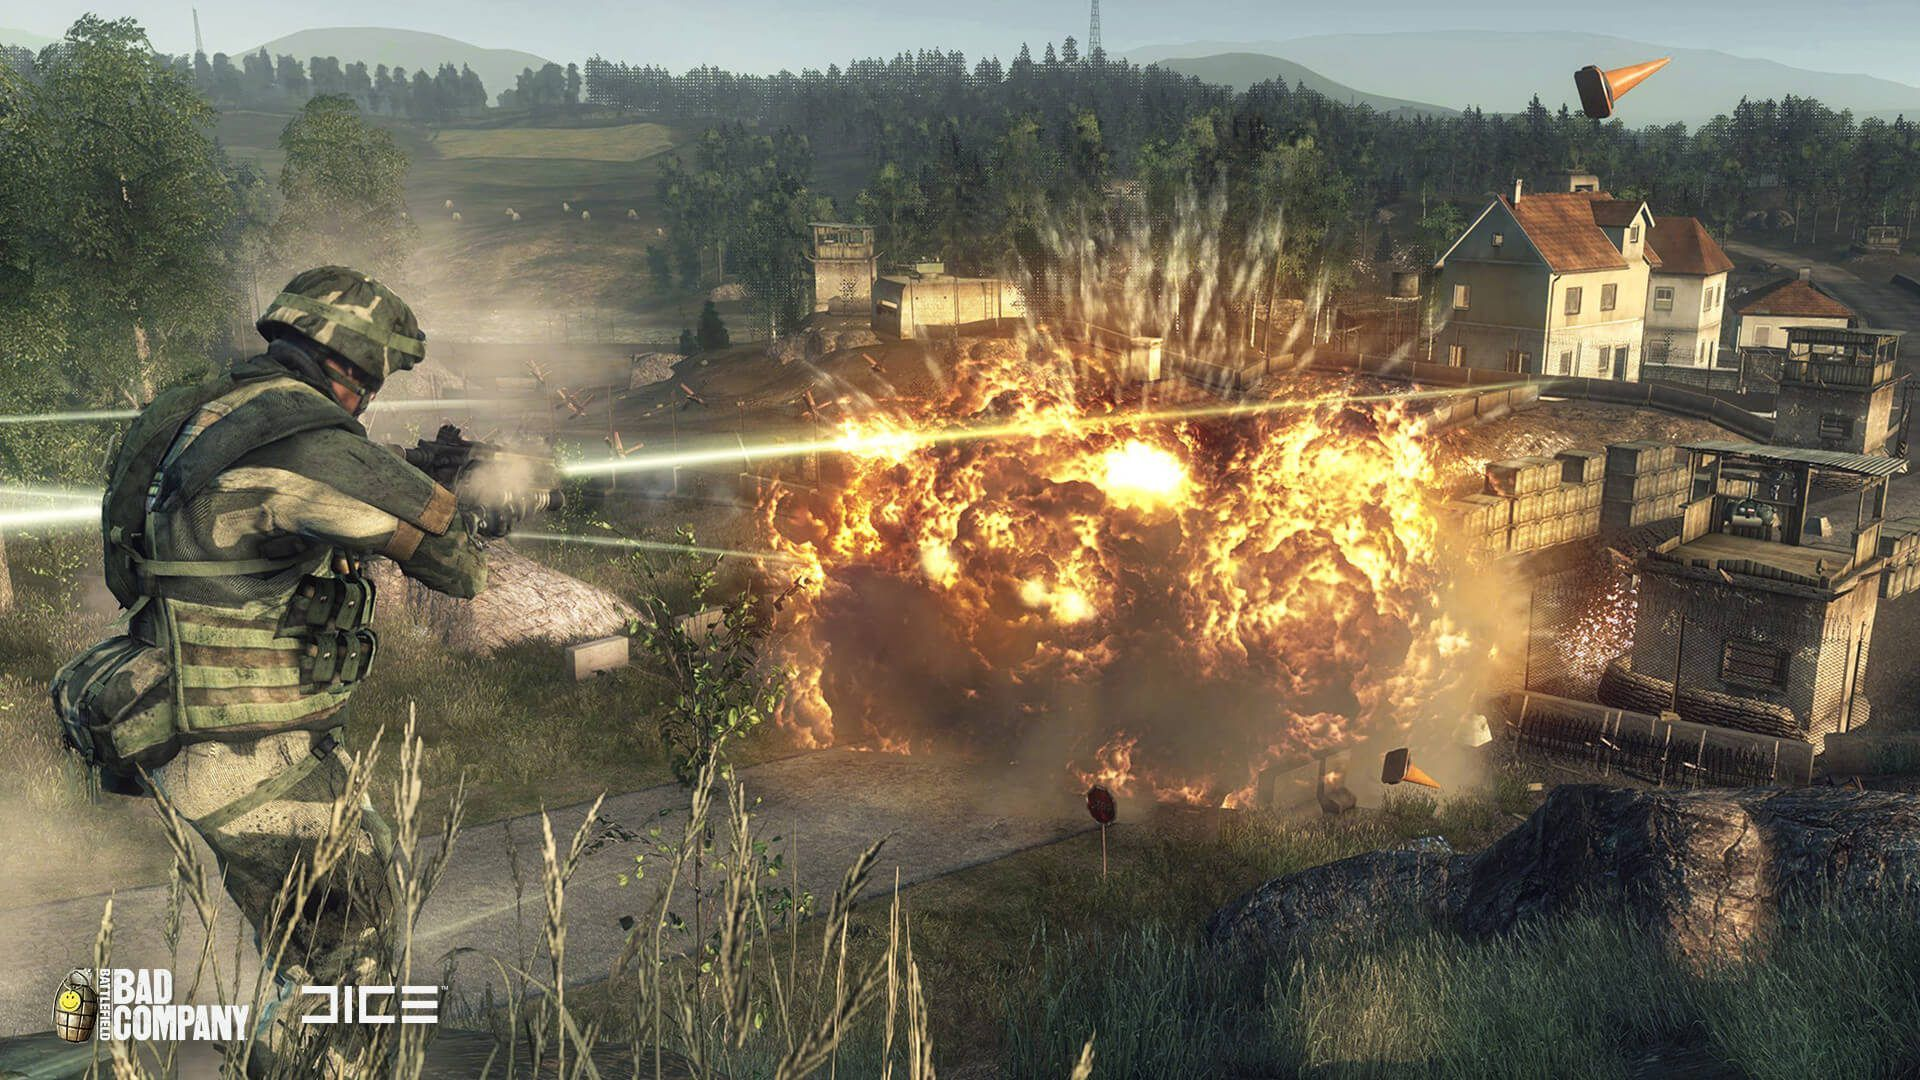 Battlefield Bad Company Now Playable On Xbox One It Feels Like Battlefield Bad Company C Battlefield Bad Company Battlefield Bad Company 2 Battlefield Games